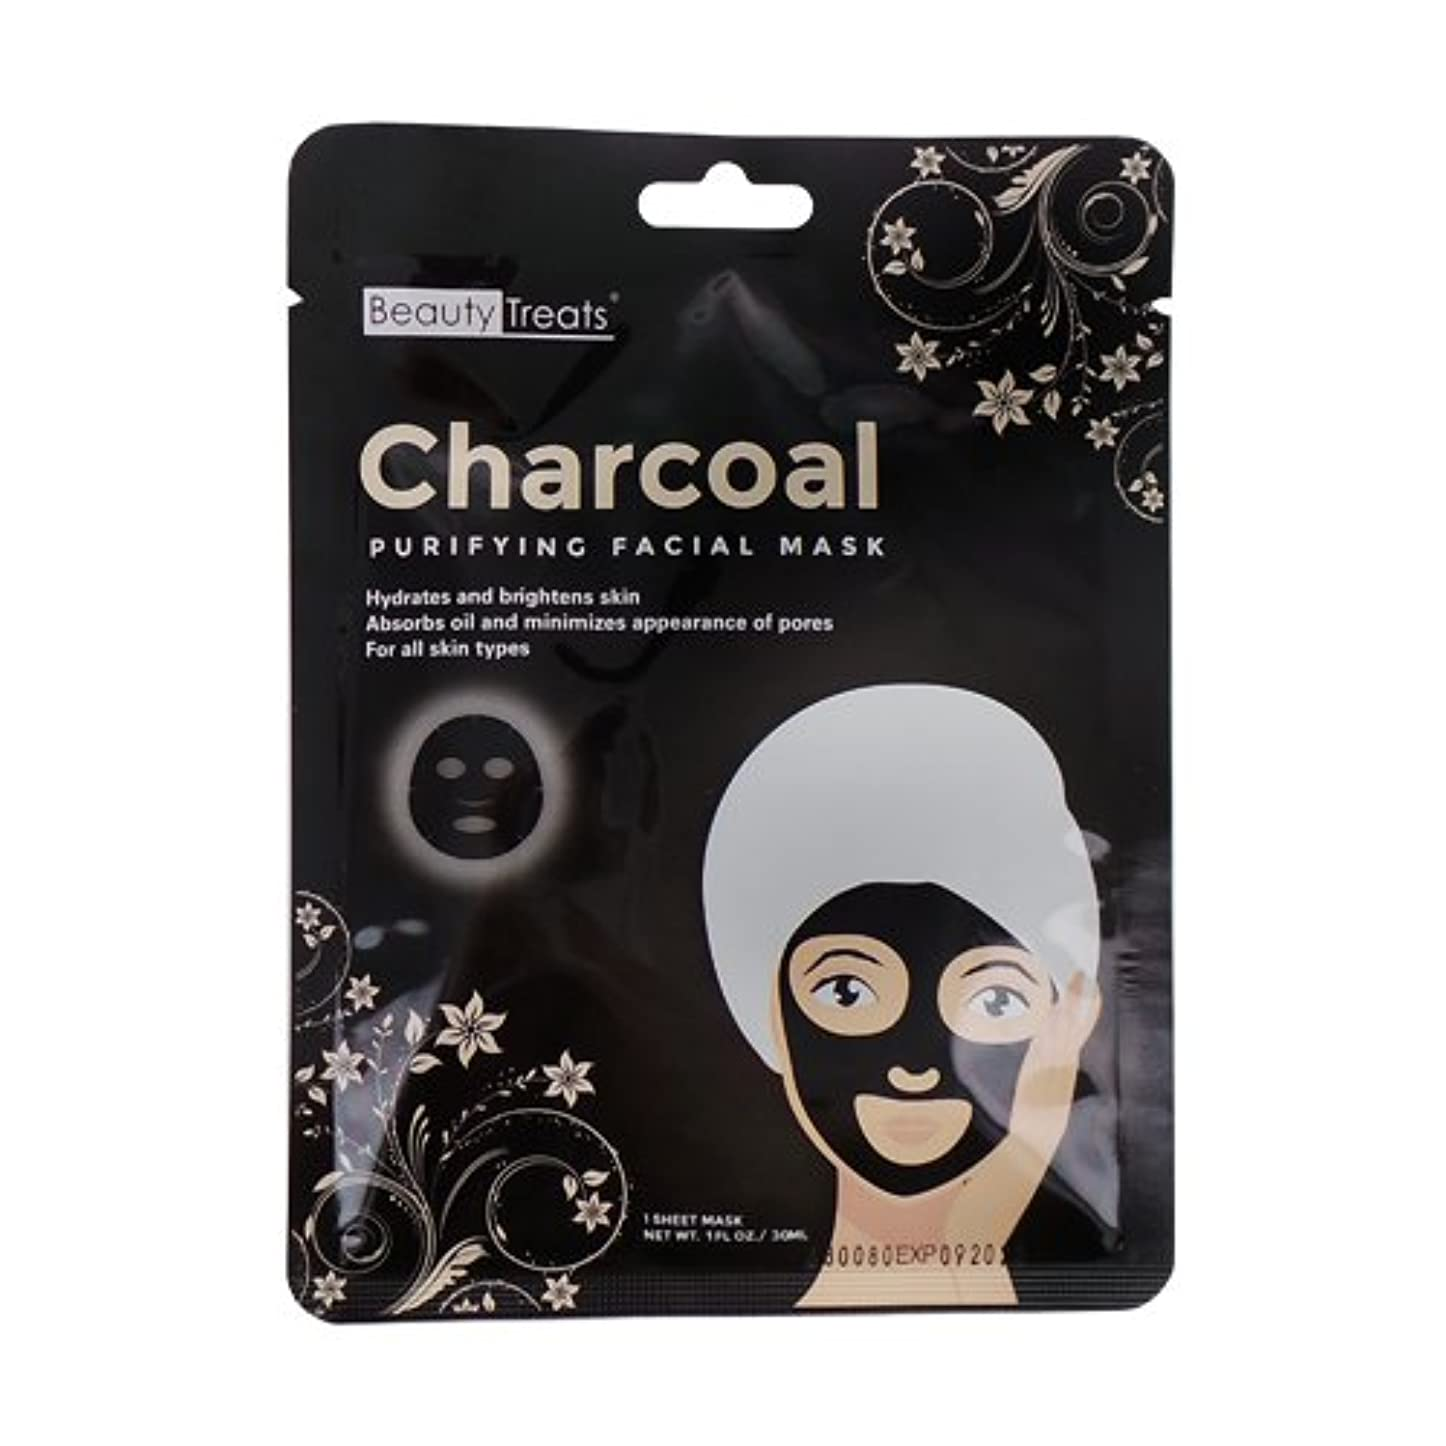 含む兄弟愛任命する(6 Pack) BEAUTY TREATS Charcoal Purifying Facial Mask (並行輸入品)